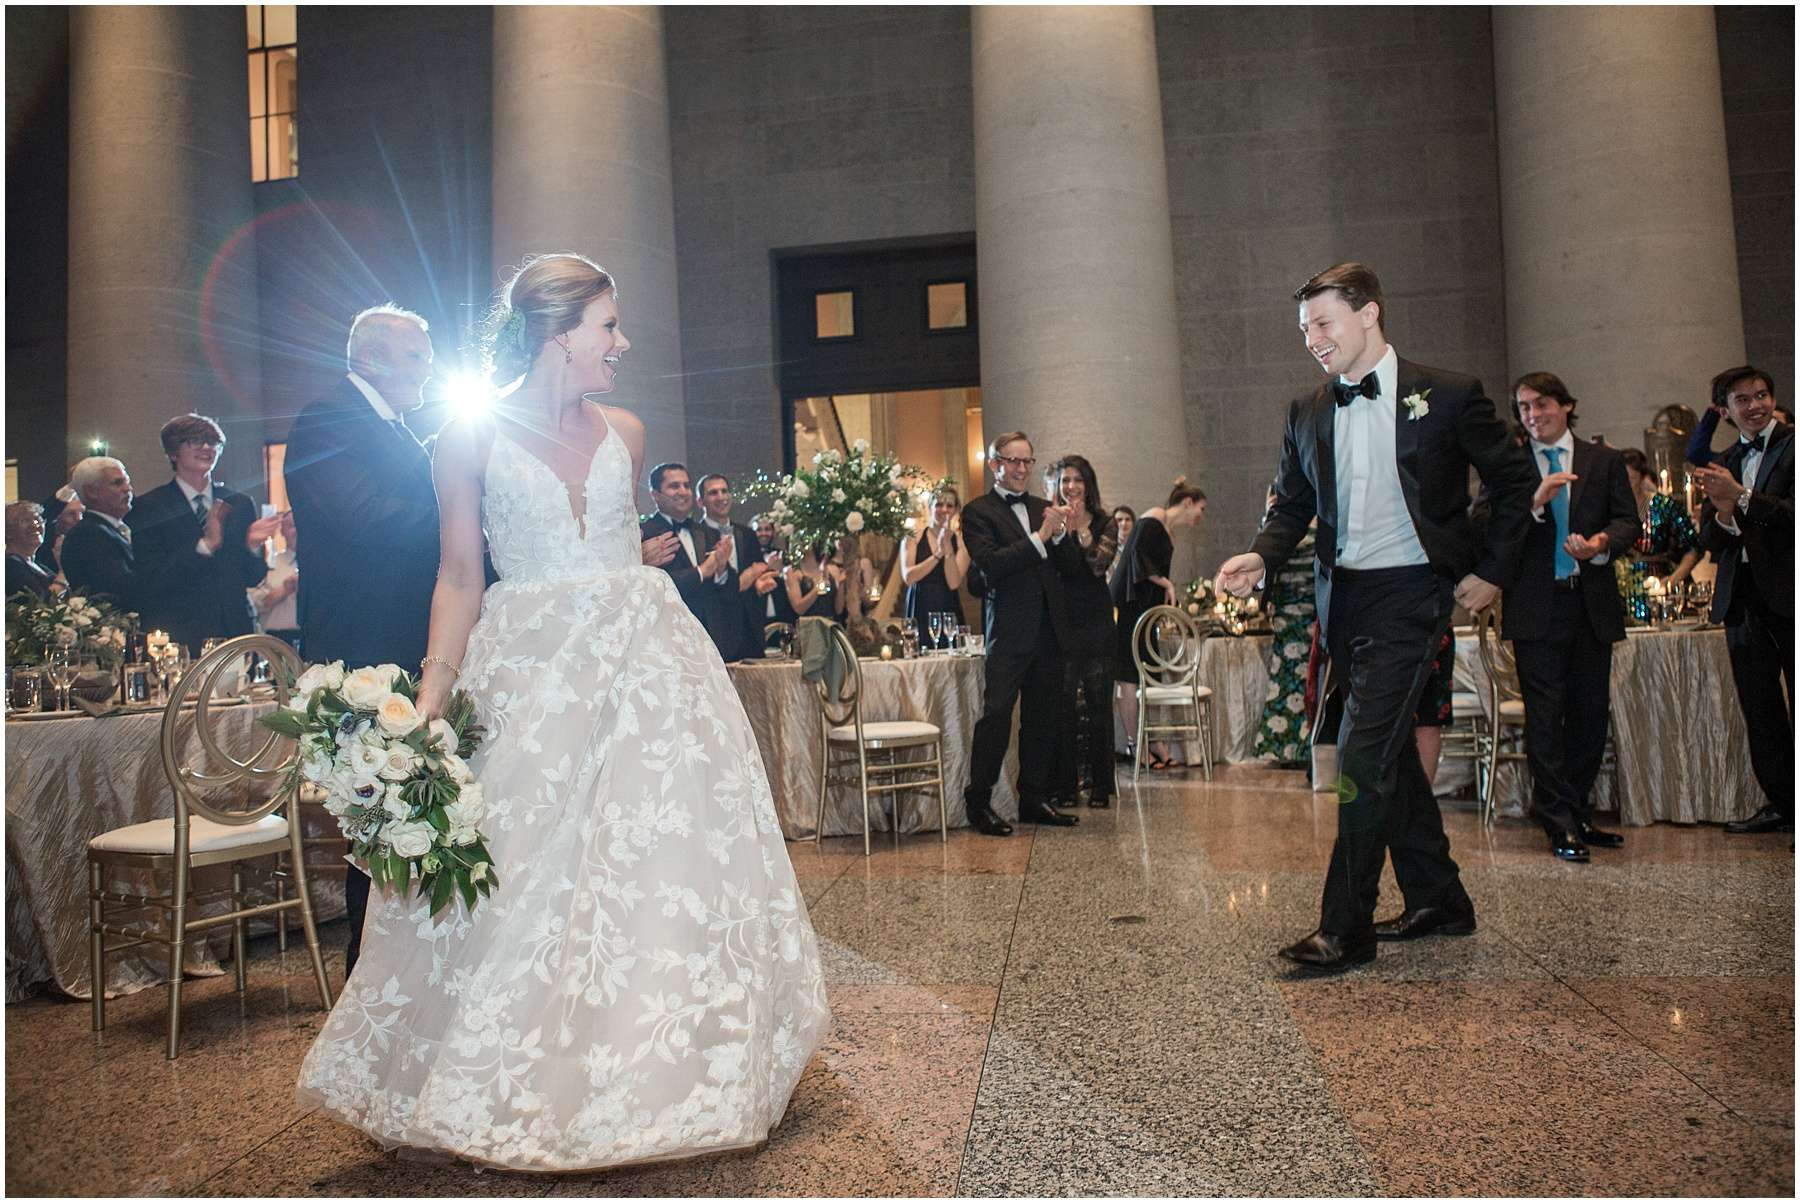 Wedding at the Ohio Statehouse | Columbus Ohio Weddings 200